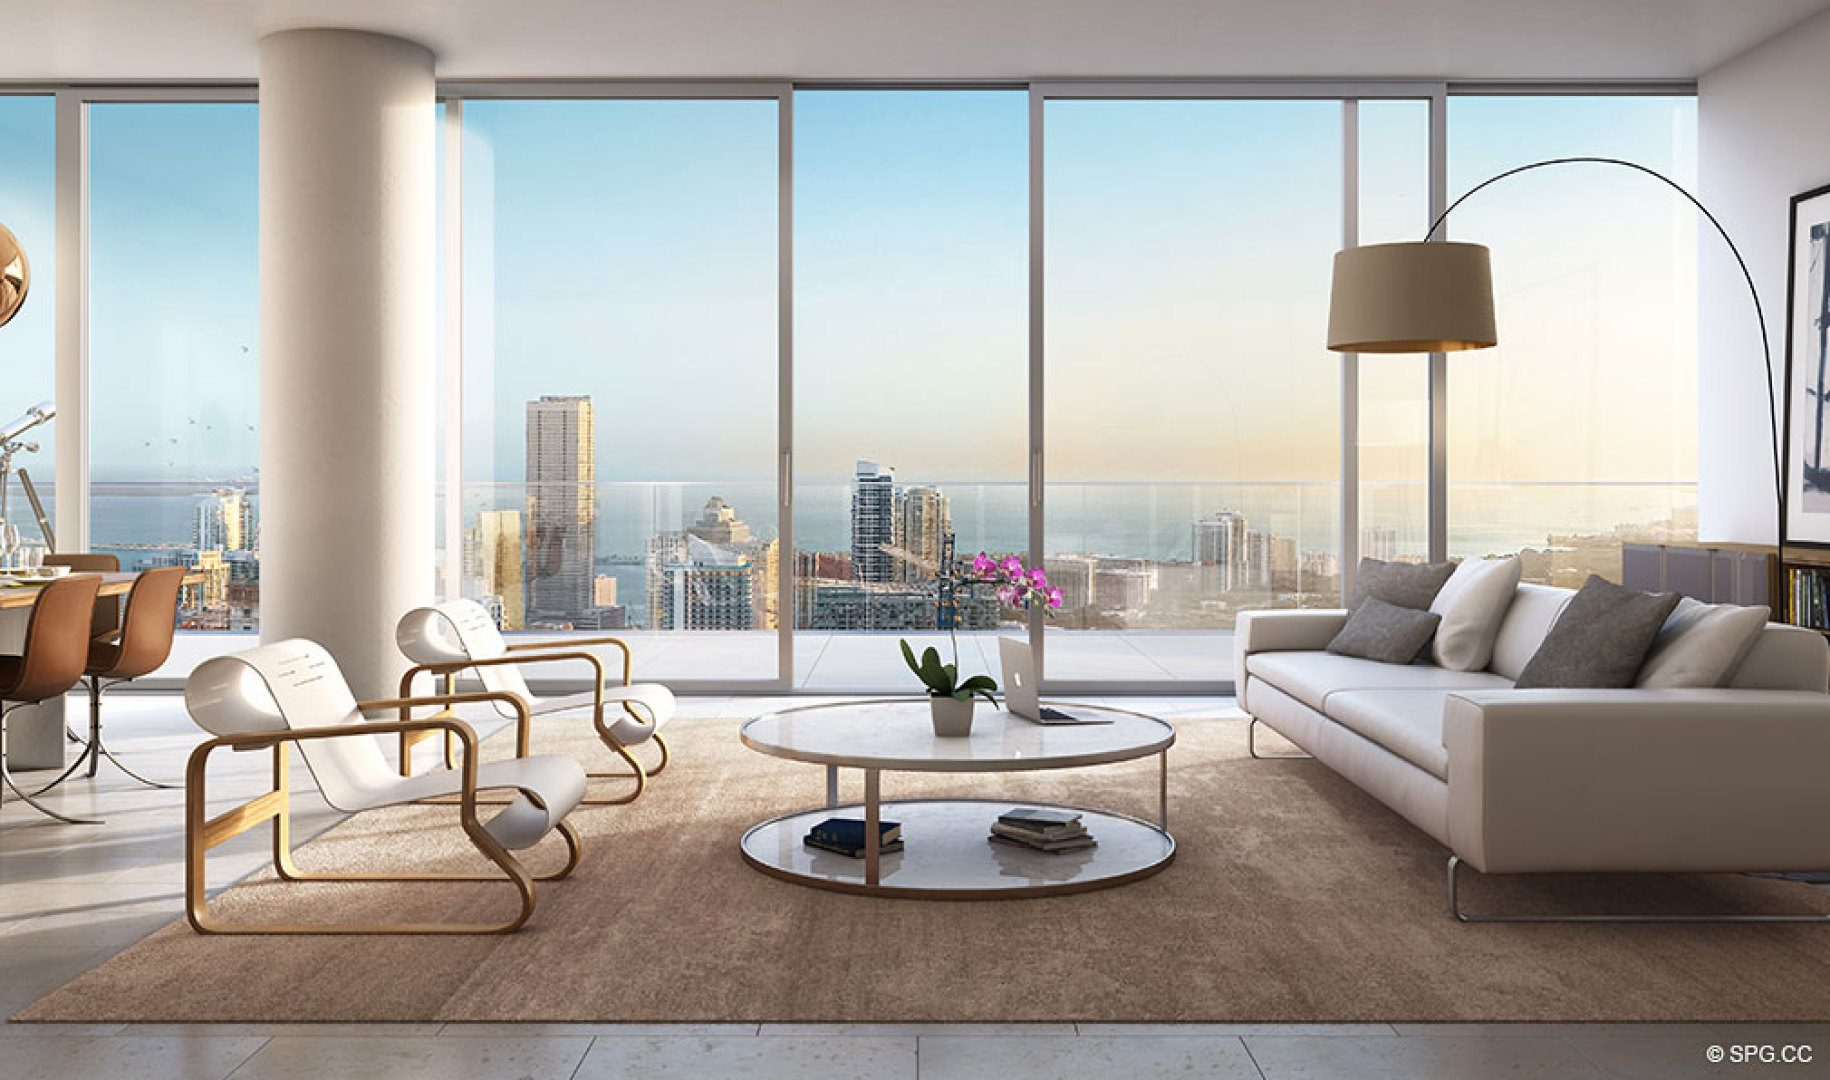 Living Room Layout in One River Point, Luxury Waterfront Condos in Miami, Florida 33130